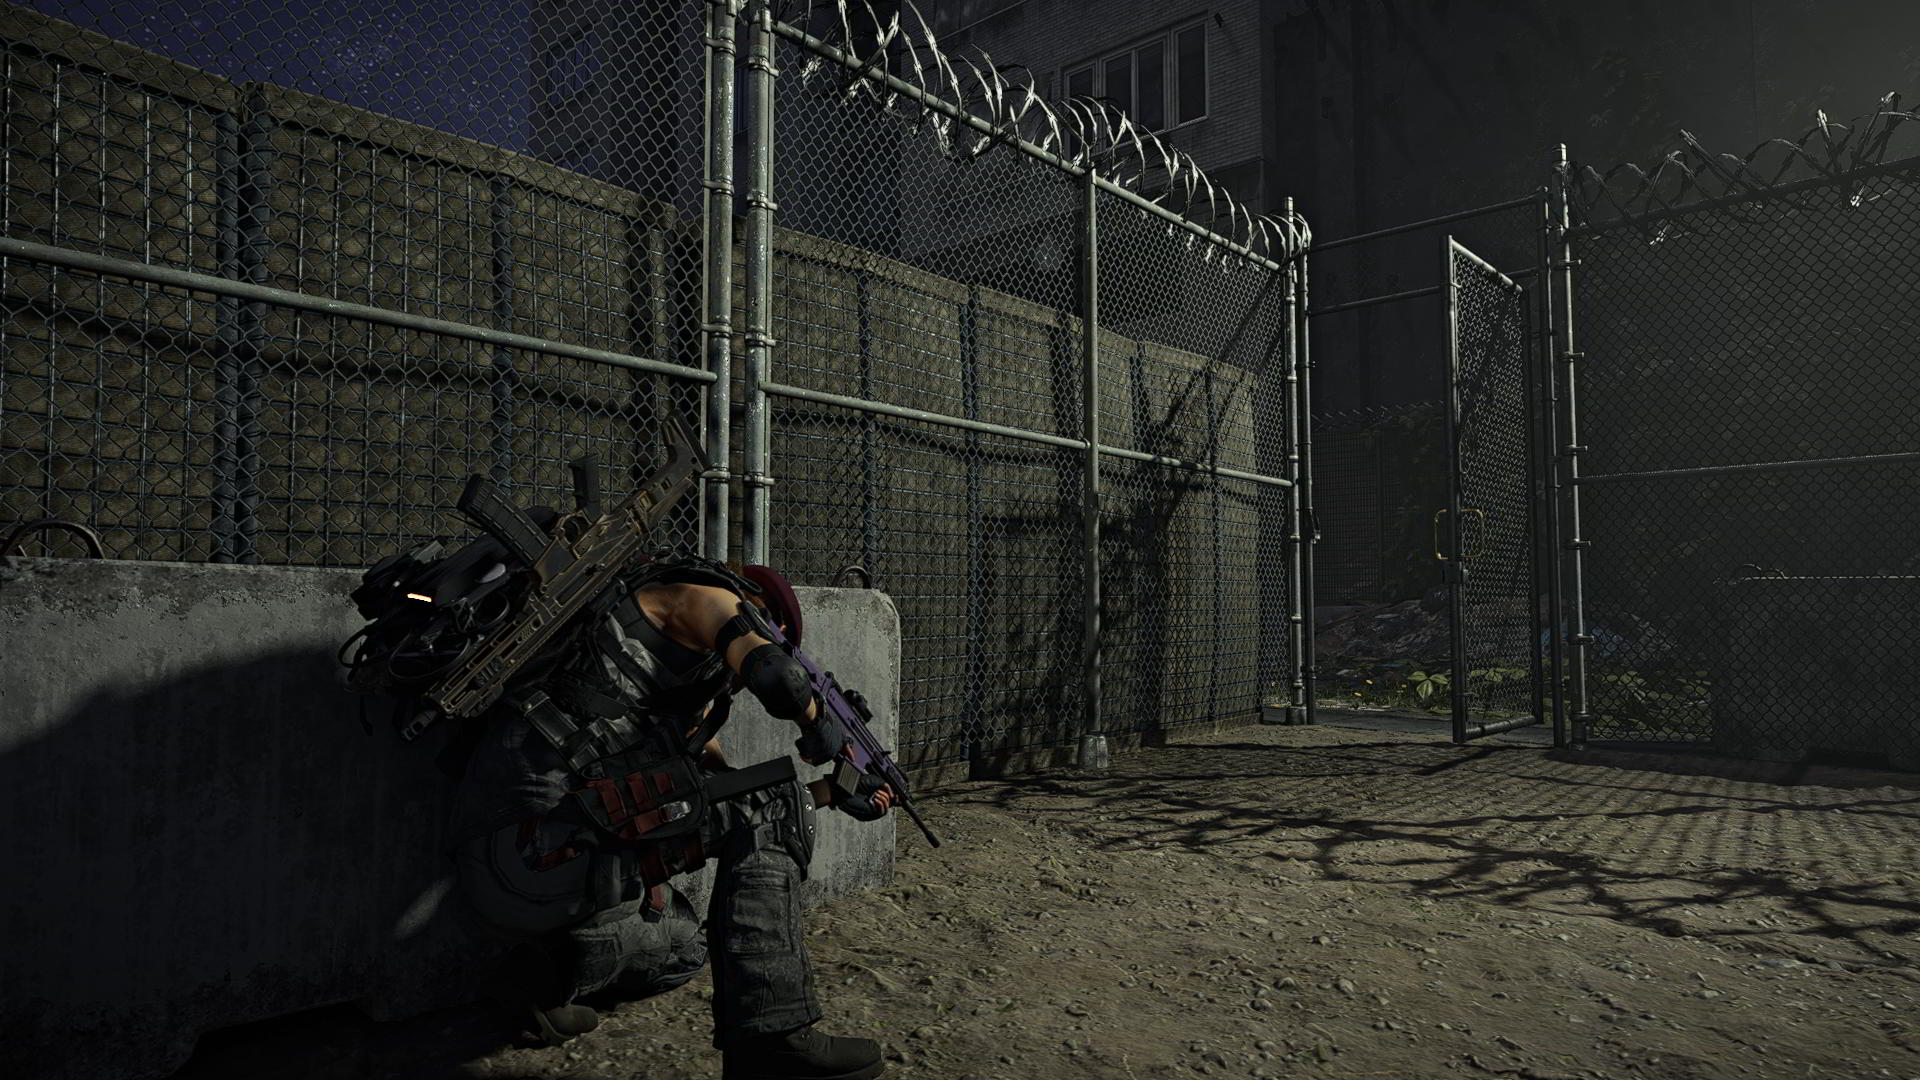 Tom Clancy's The Division 2_20190327_000701.jpg